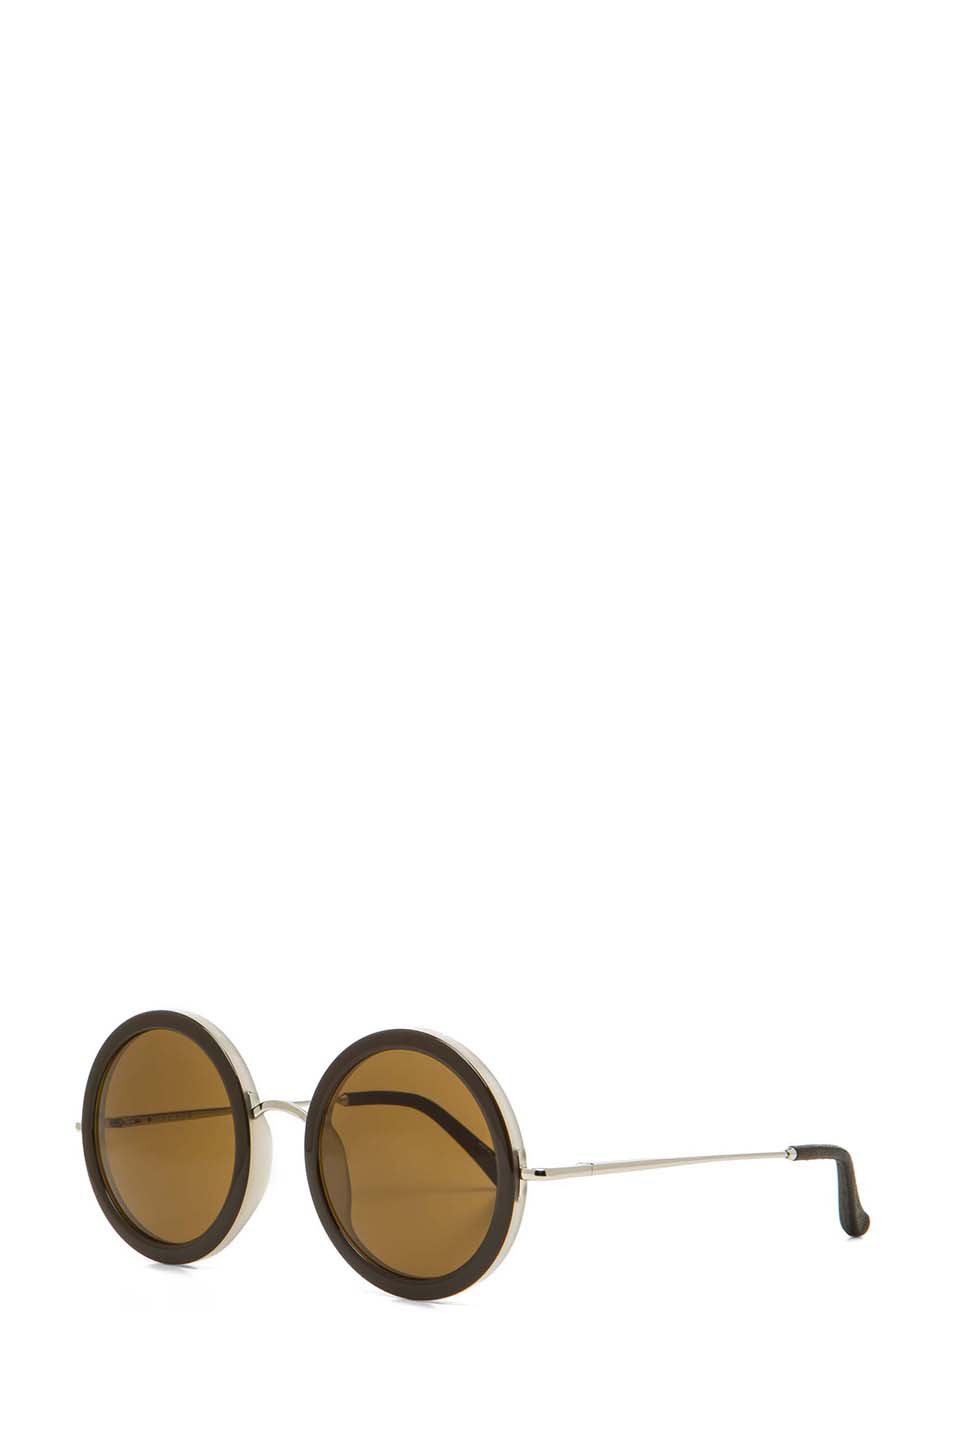 The Row|Signature Round Sunglasses in Iron & Blush